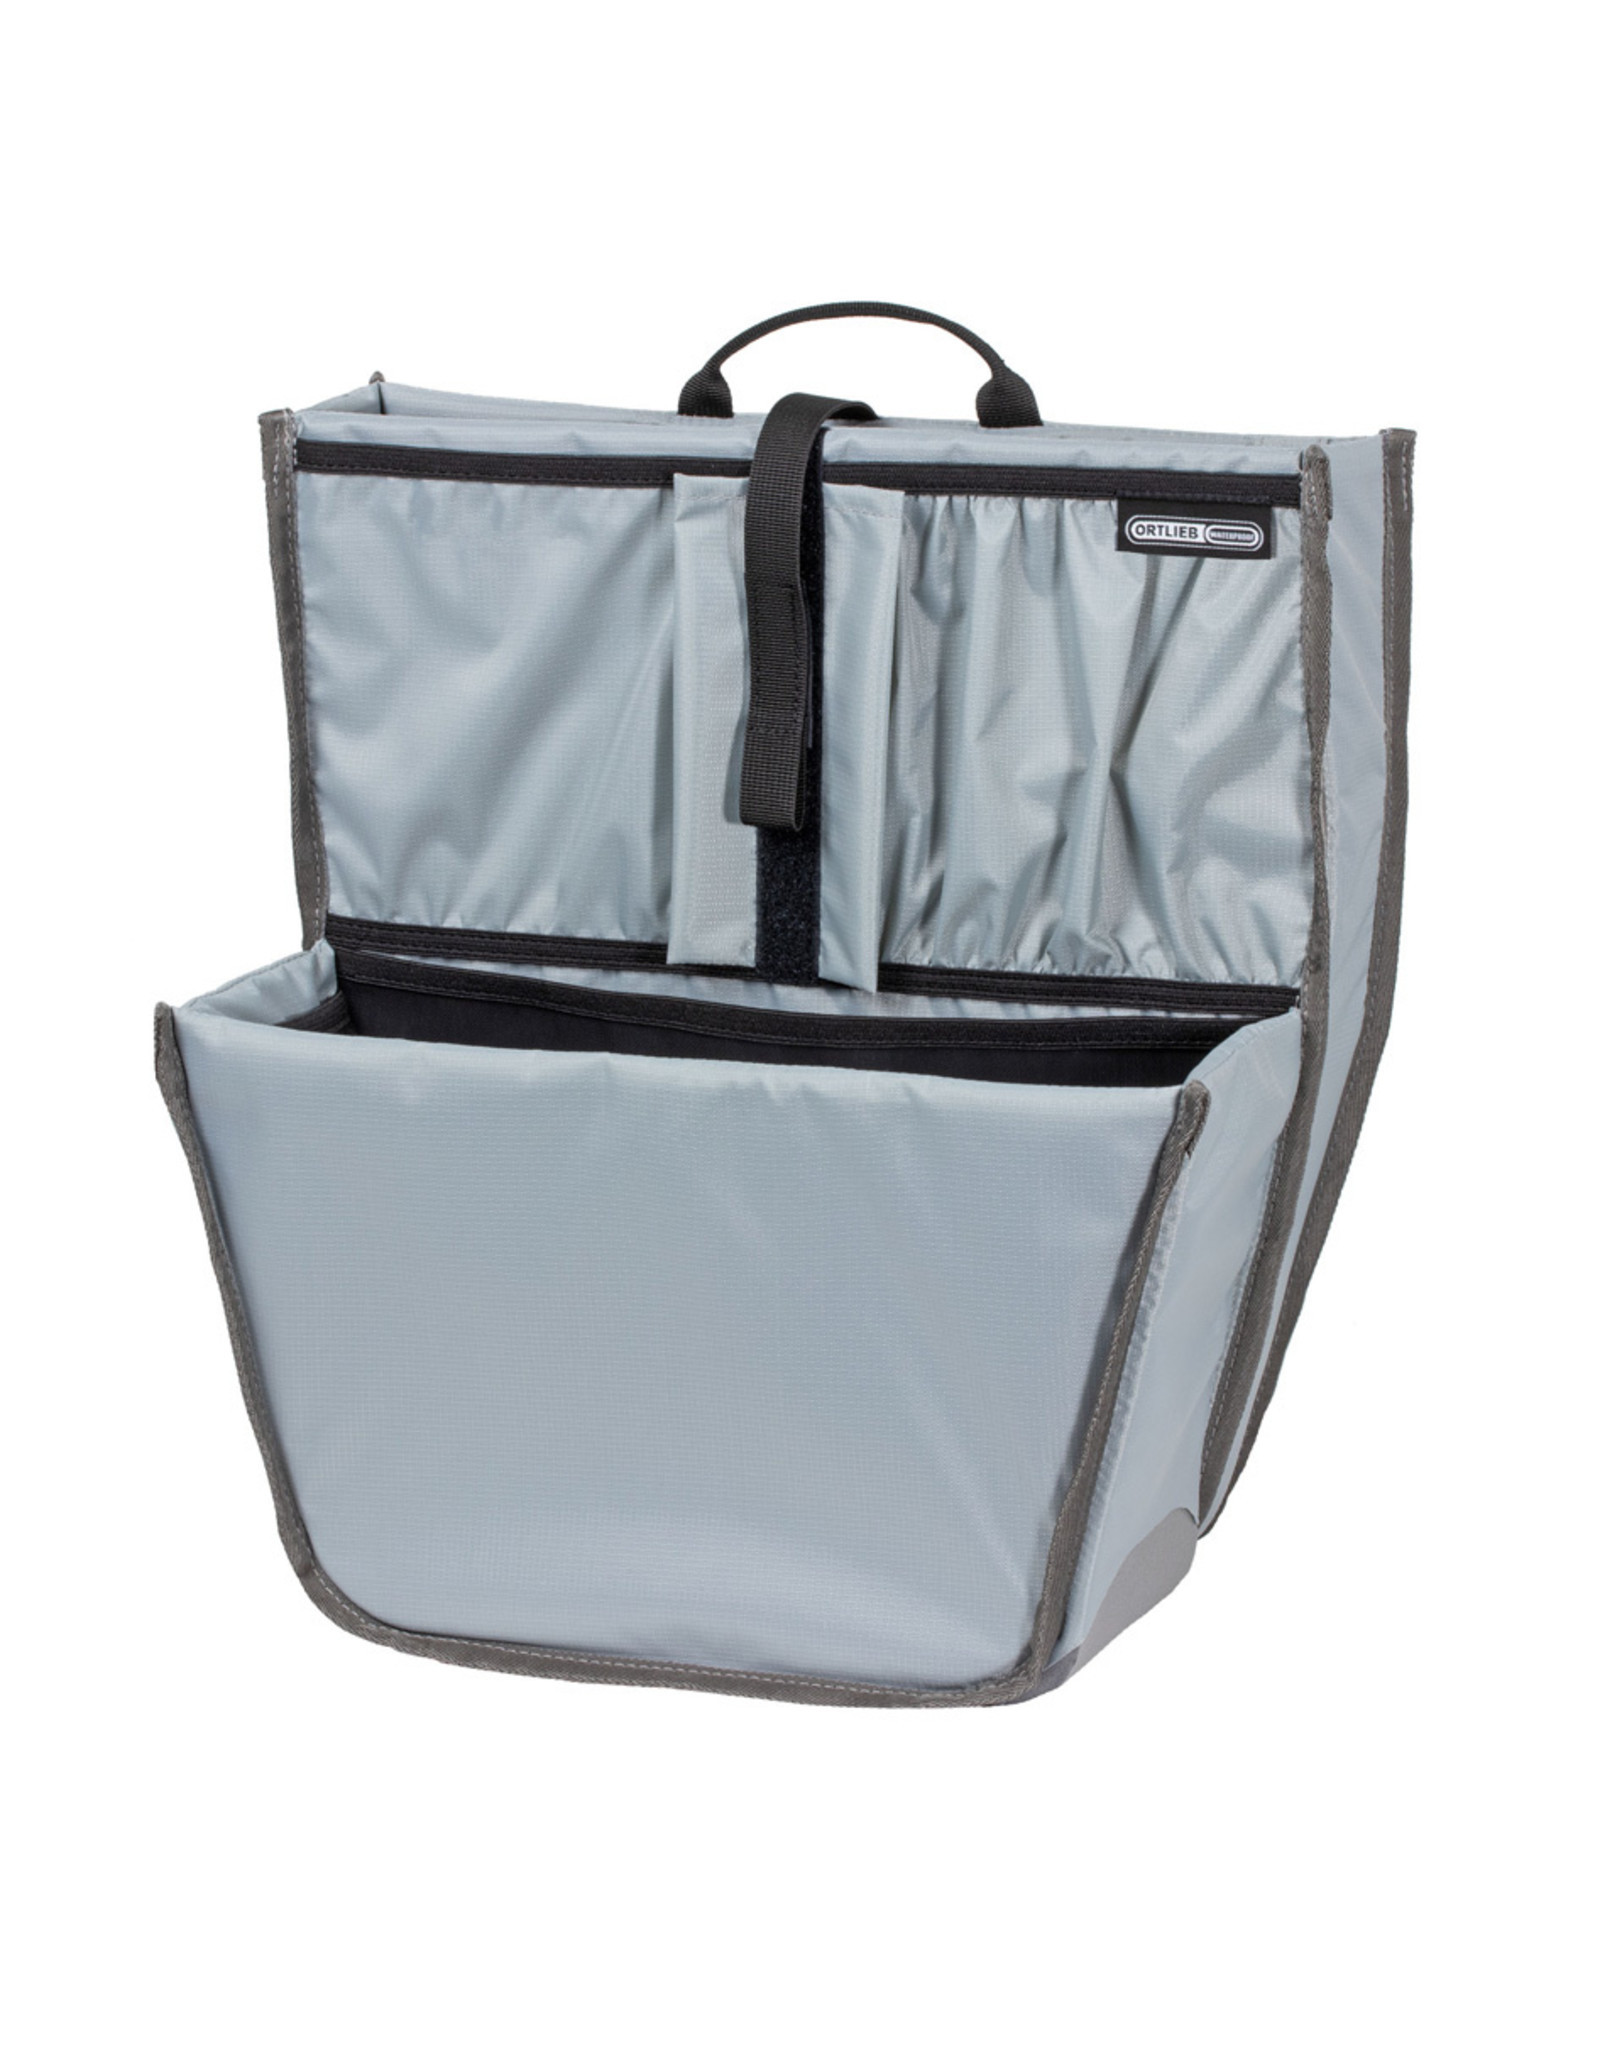 Ortlieb Commuter Insert for Panniers